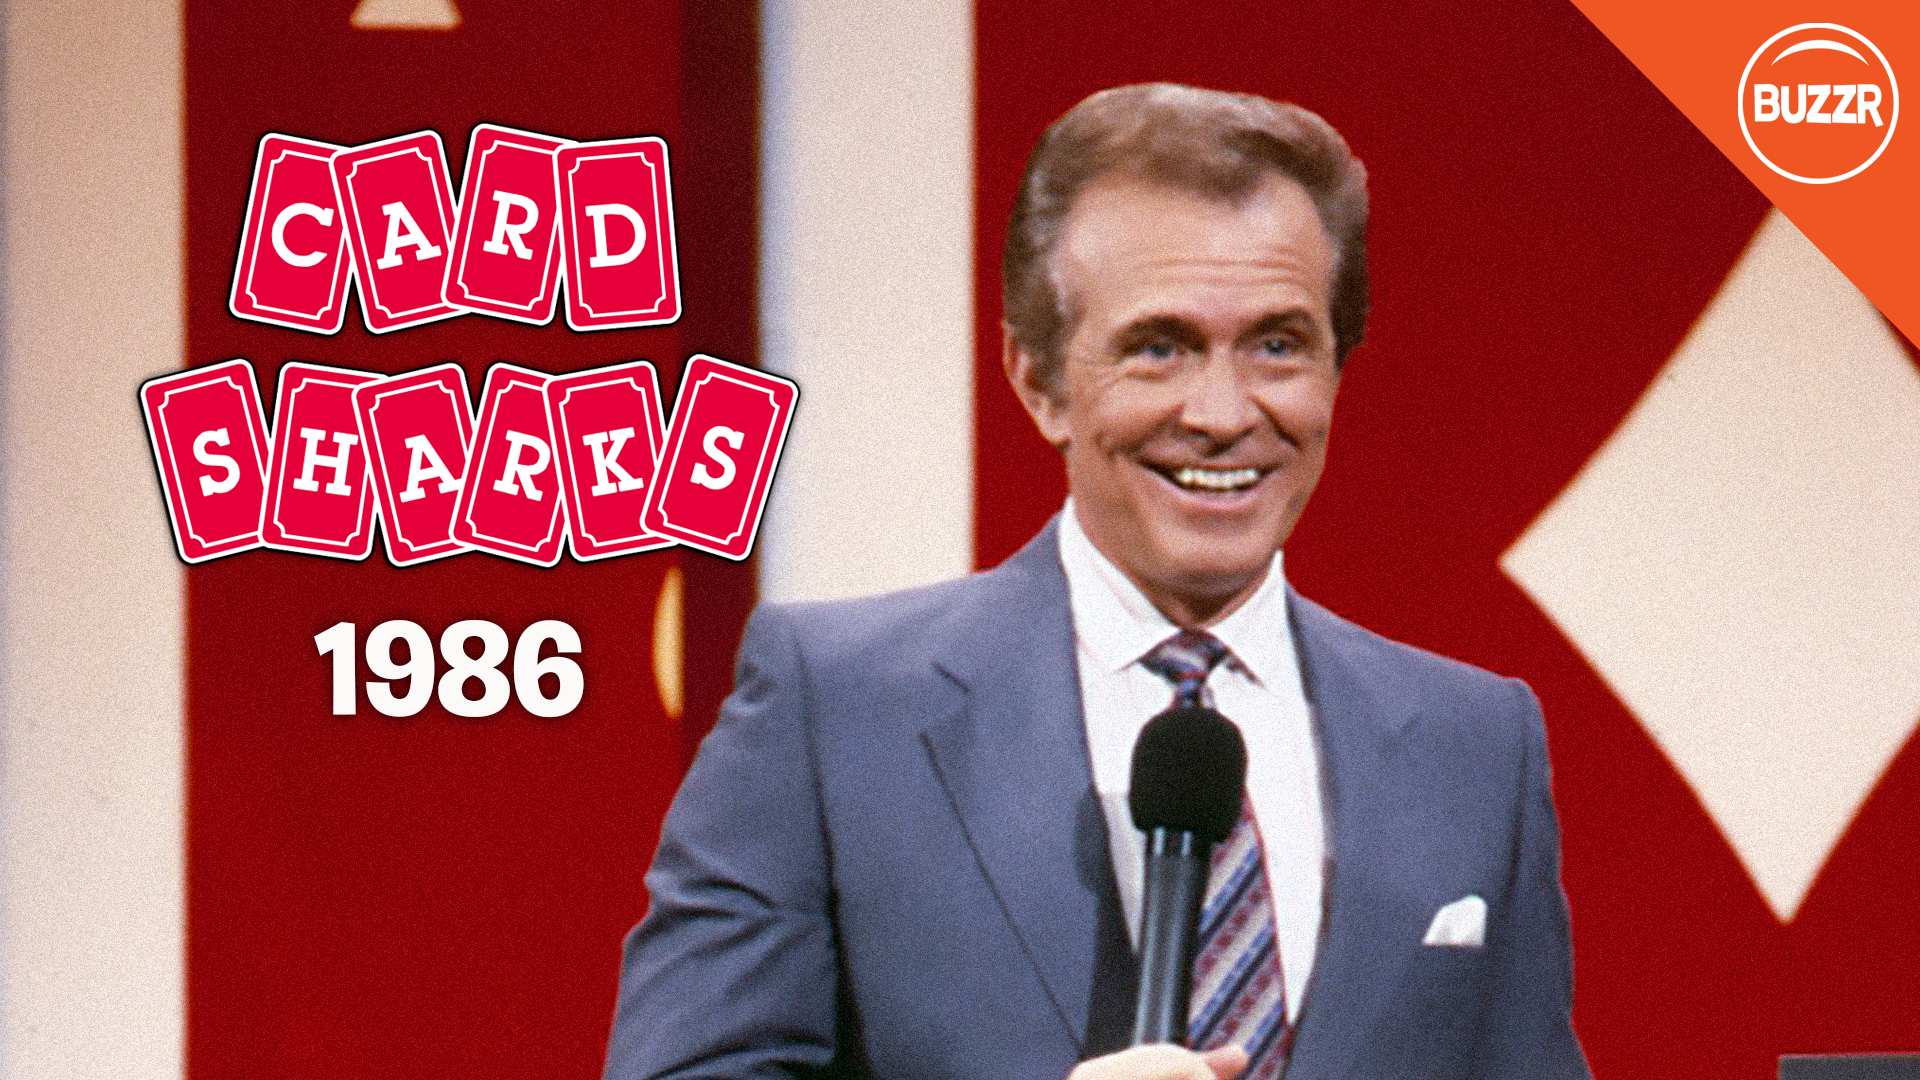 Card Sharks with Bob Eubanks